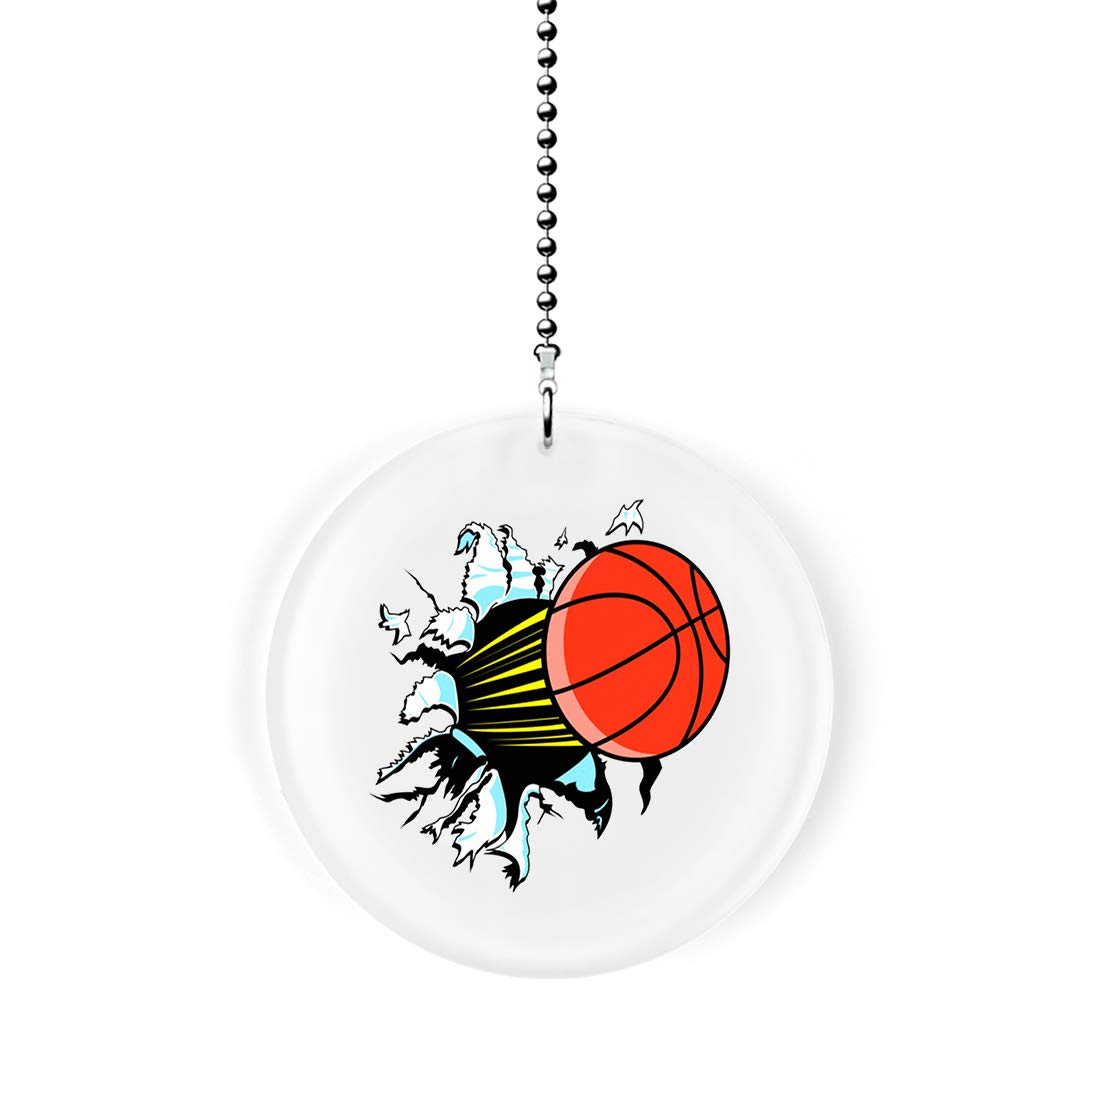 Amazon.com: Gotham Decor Basketball Punch Out Fan/Light Pull: Home ...